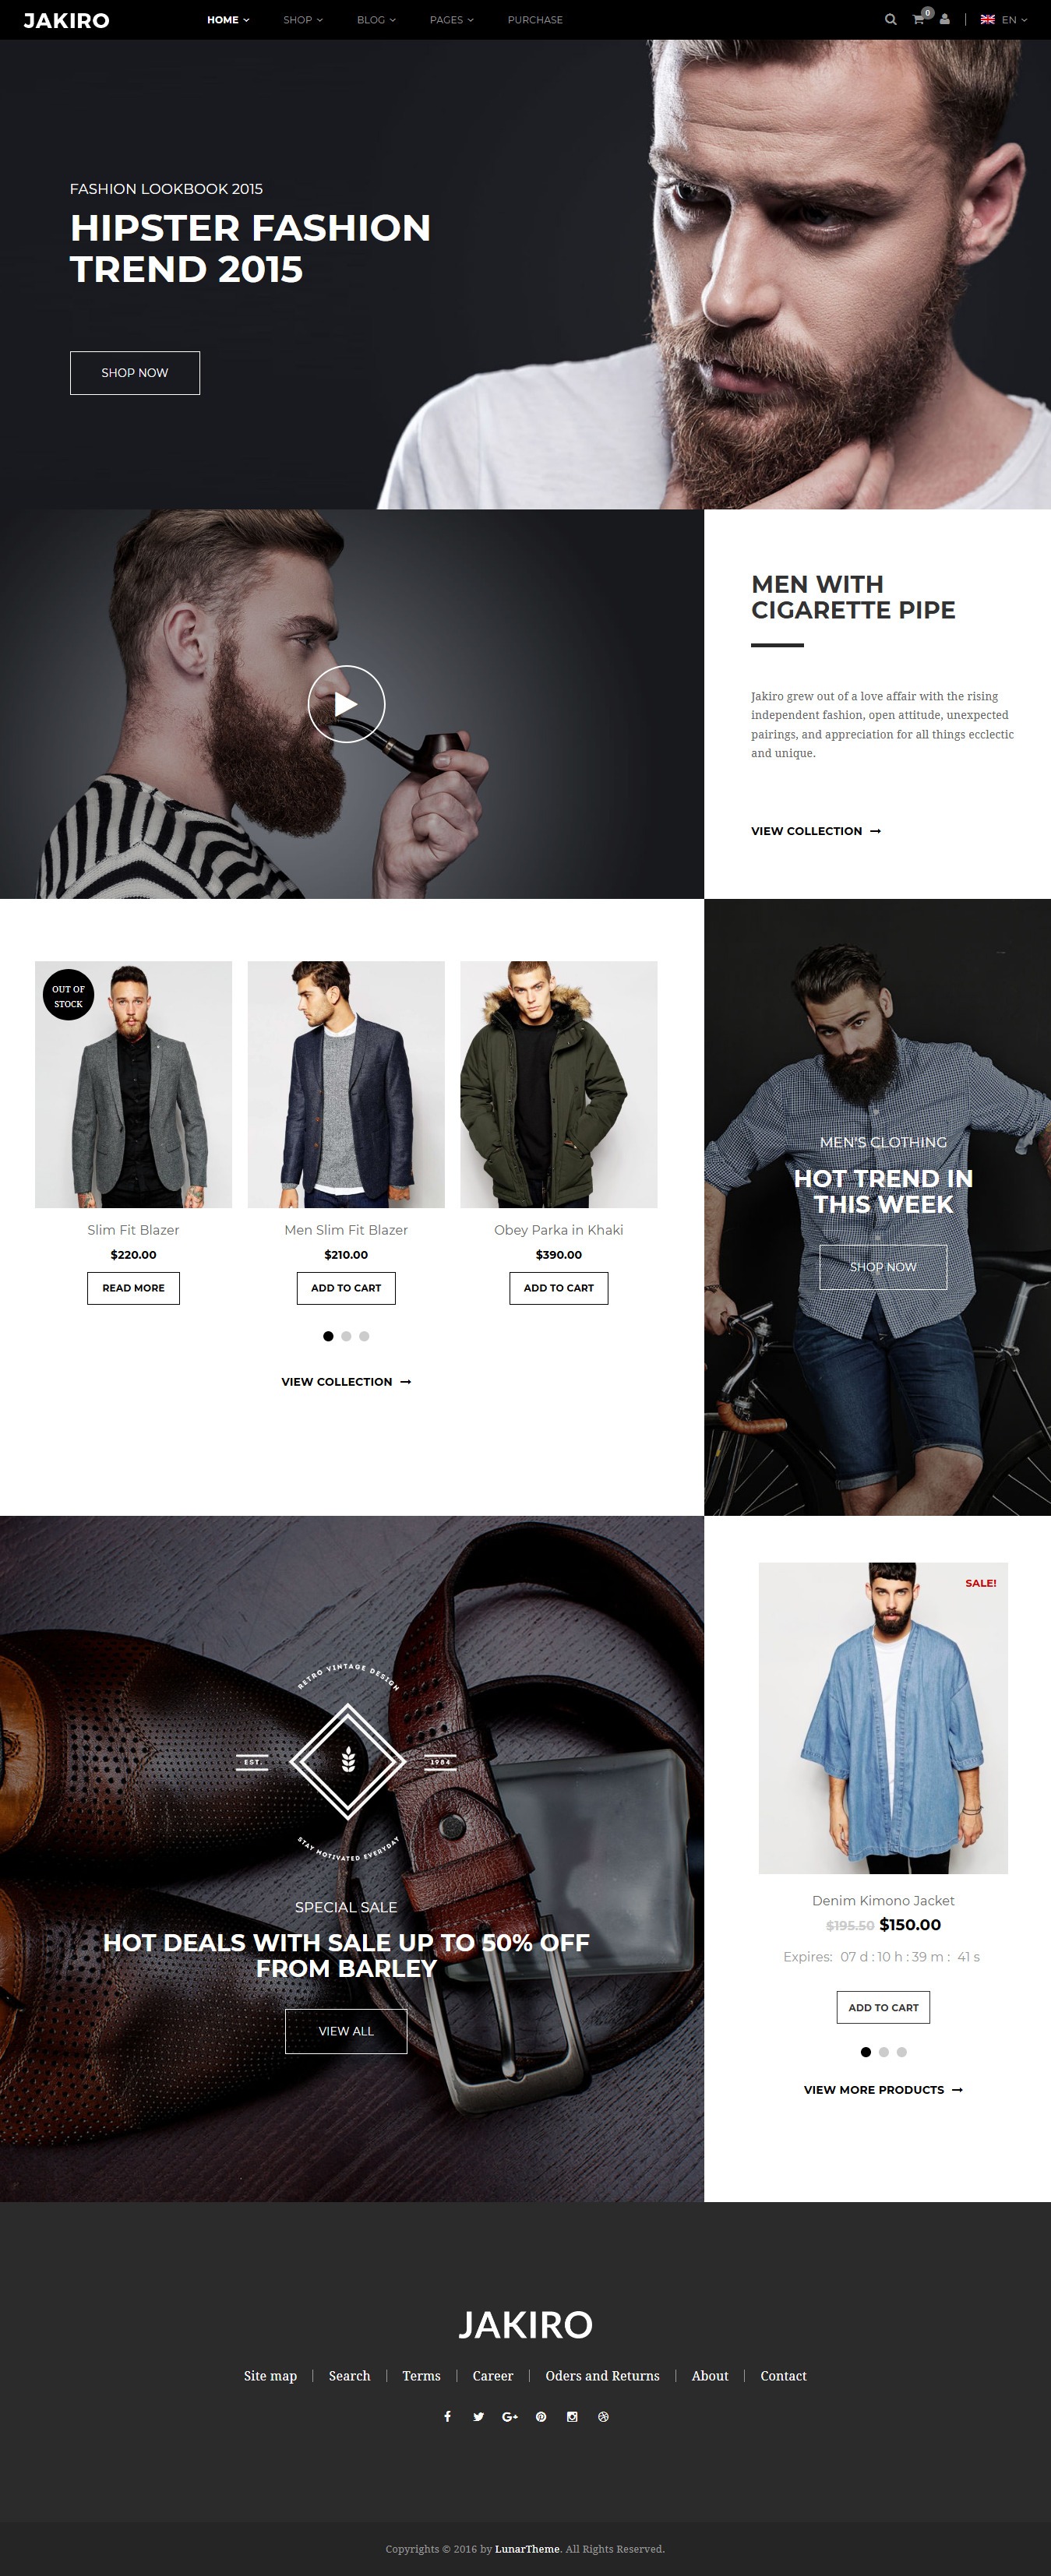 Jakiro - Best Premium Fashion WordPress Themes